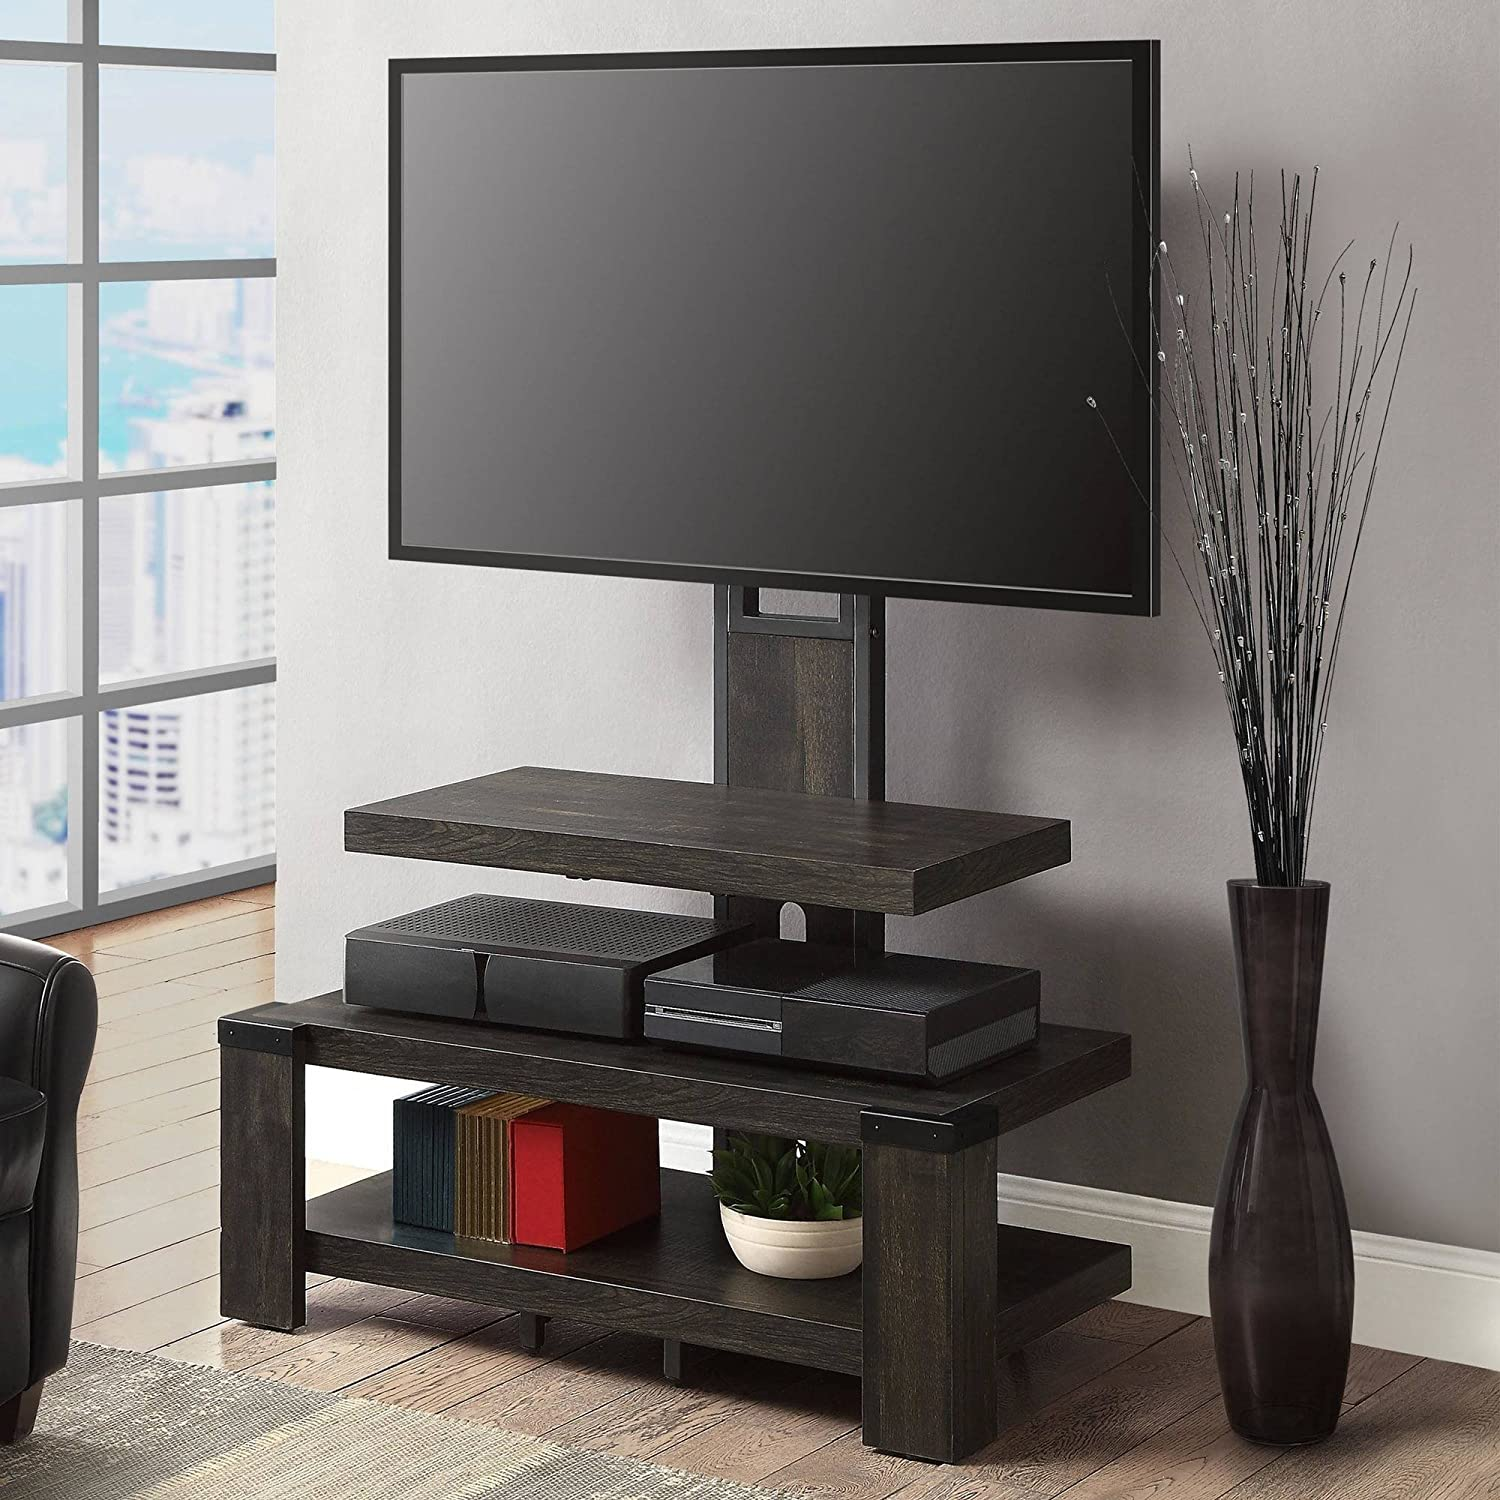 Weathered dark pine finish Whalen 3 Shelf TV Stand with Mount for TVs up to 46